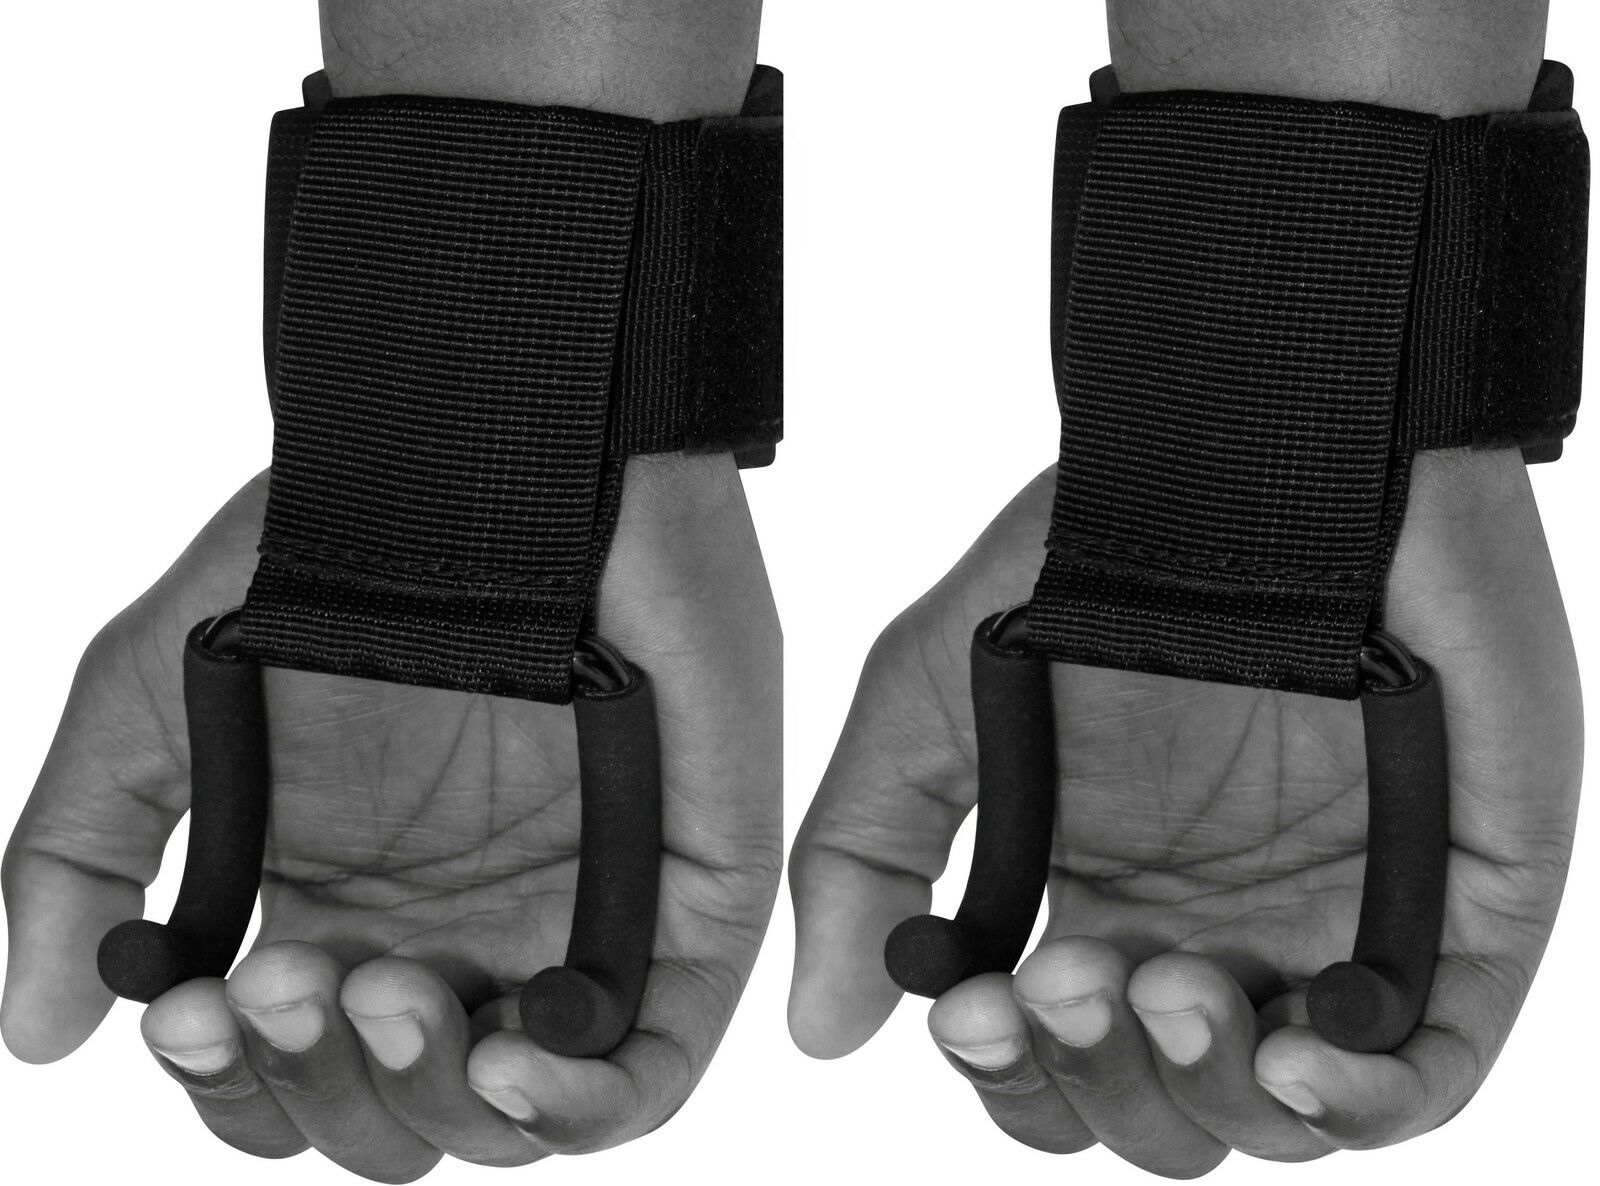 RDX Pro Weight Lifting Training Gym Hook Grips Straps Gloves Wrist Support W8B